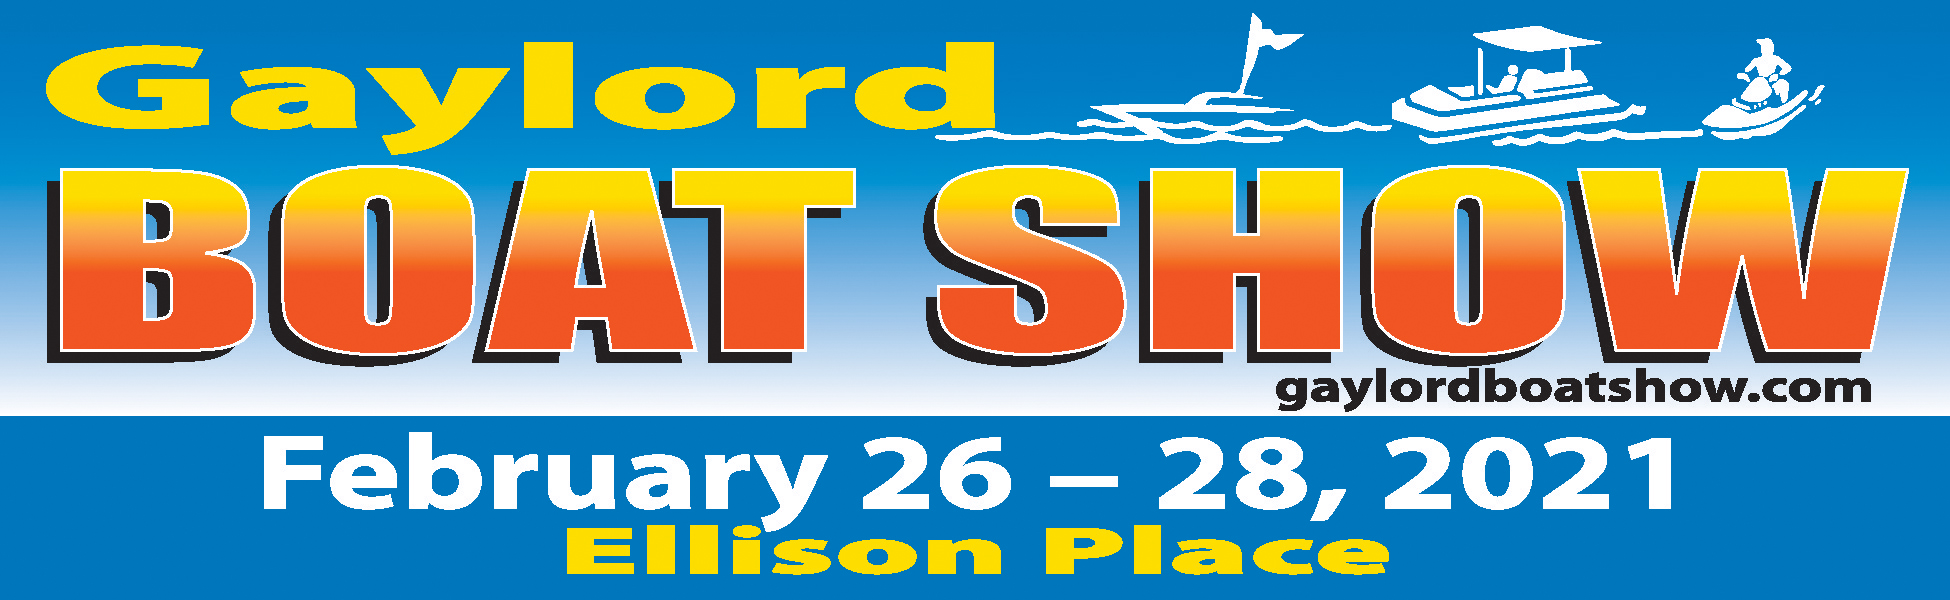 Gaylord Boat Show